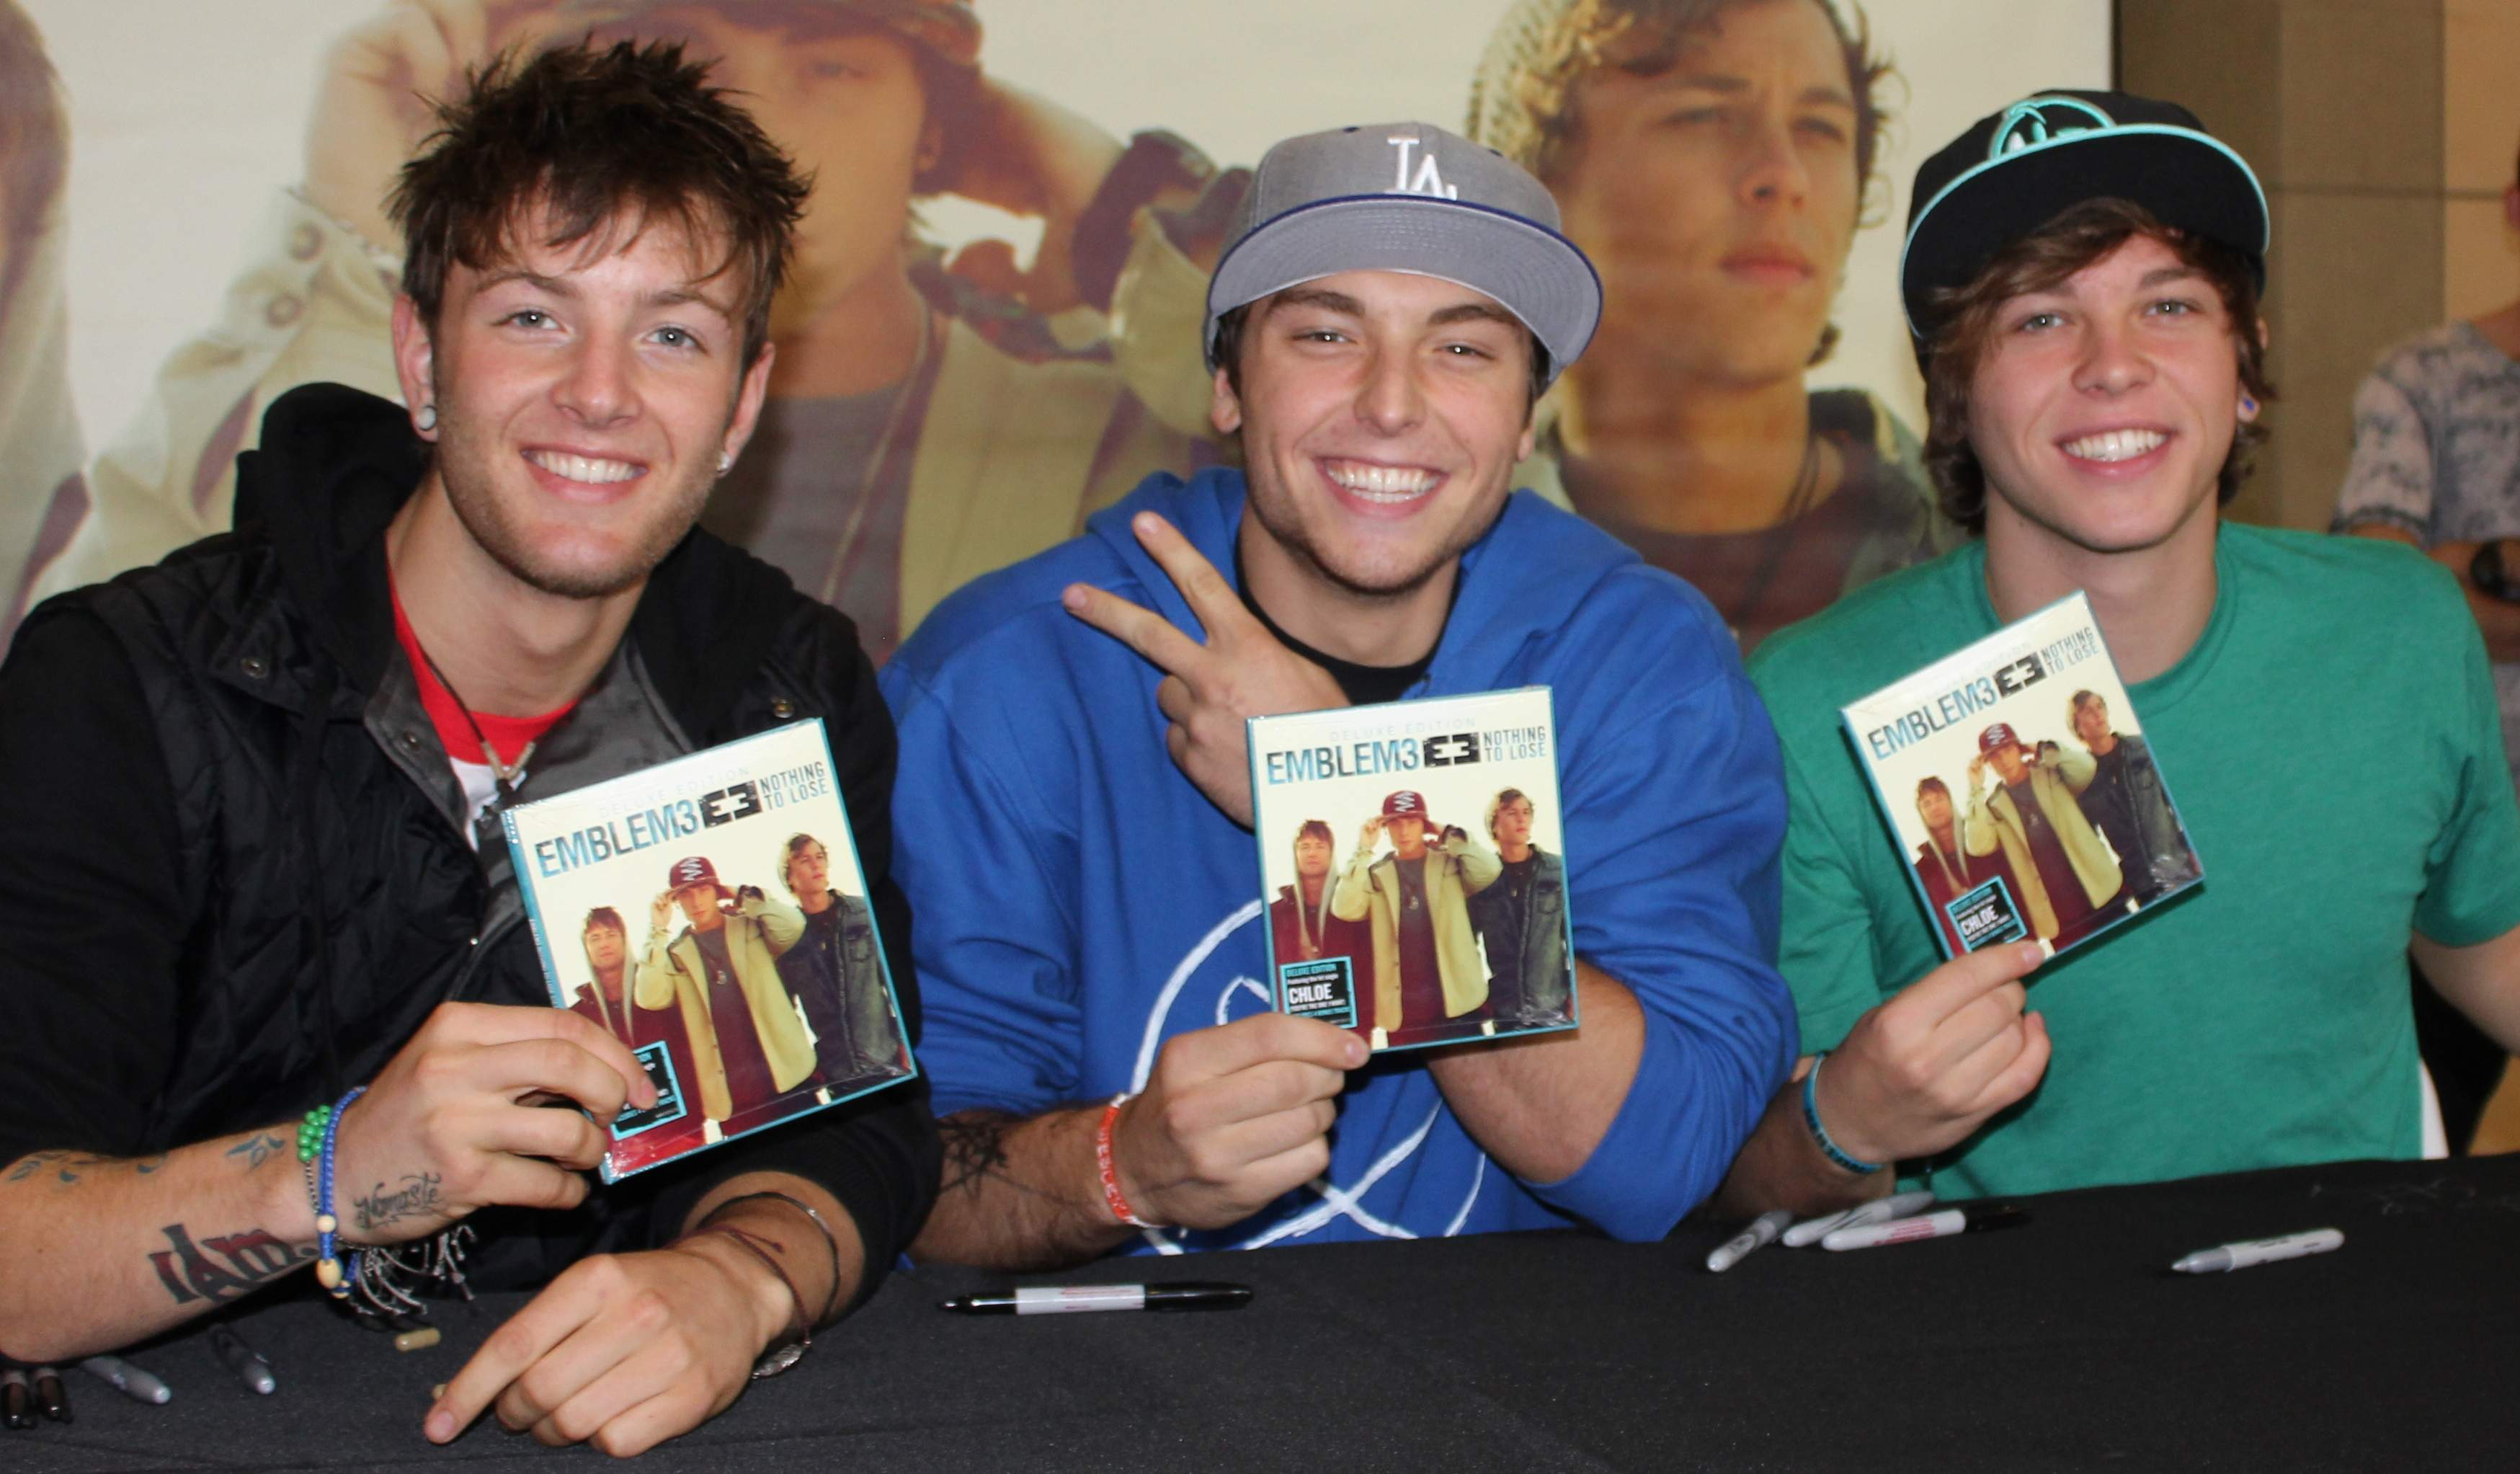 Emblem3: Admit it, they're adorable.